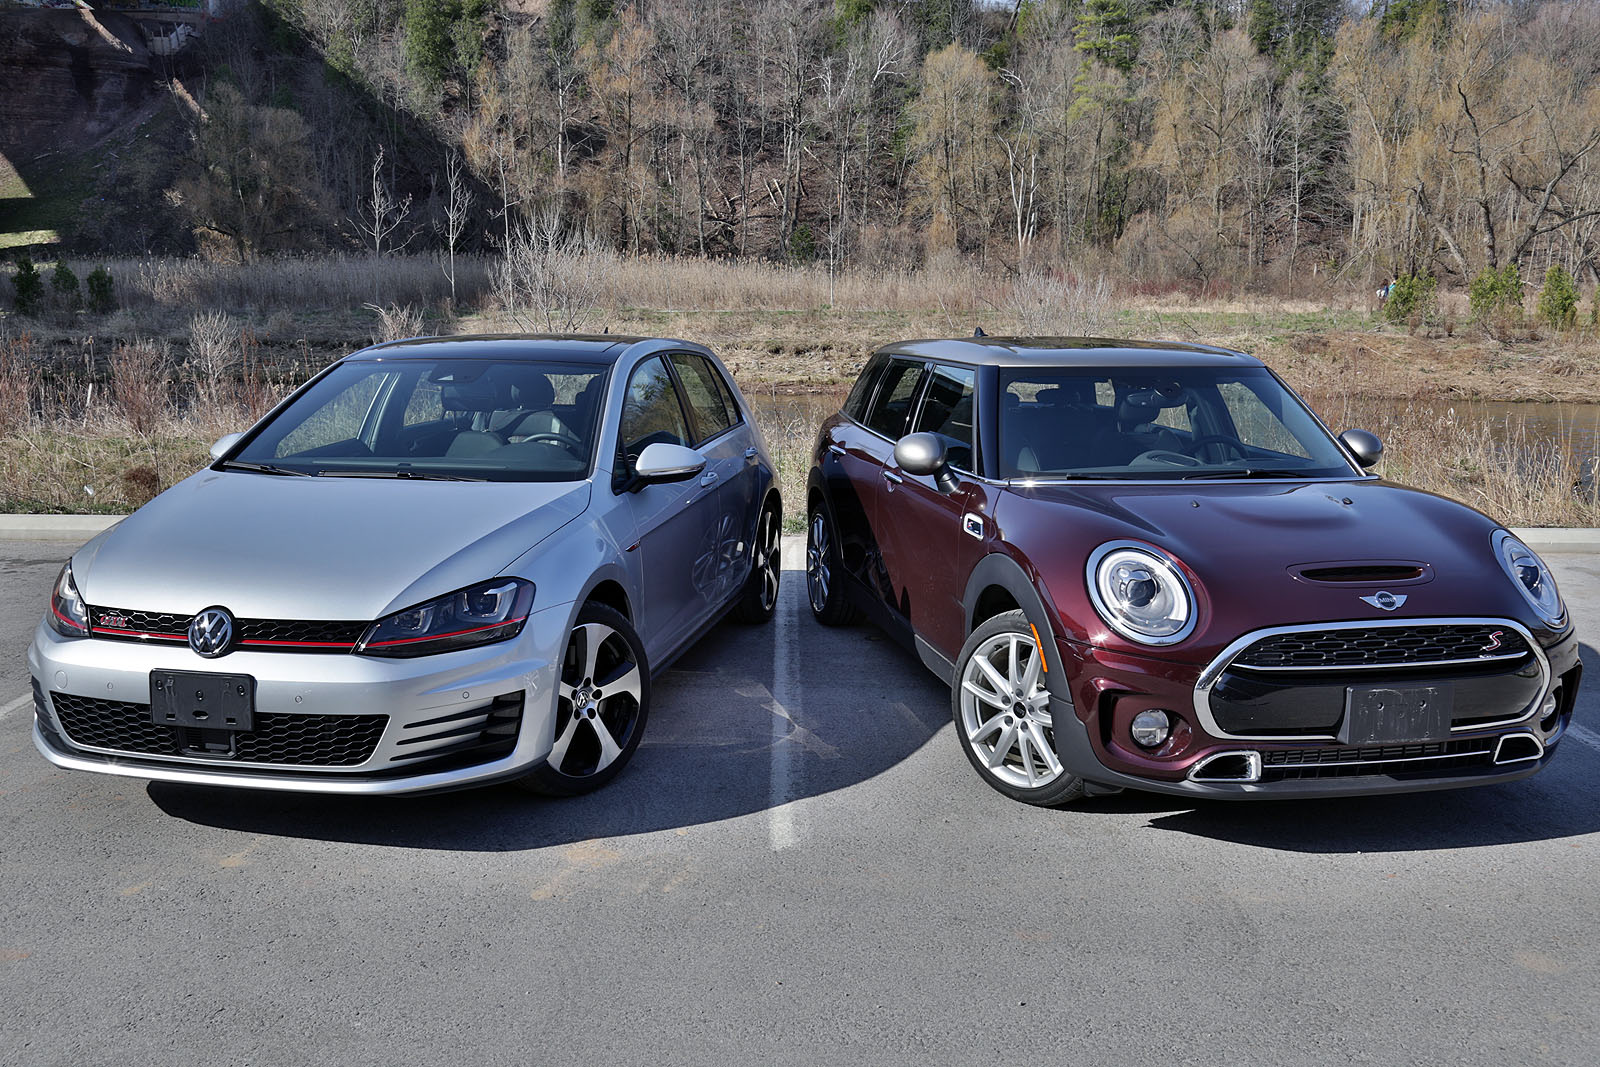 Vw Gti Vs Mini Clubman S 23